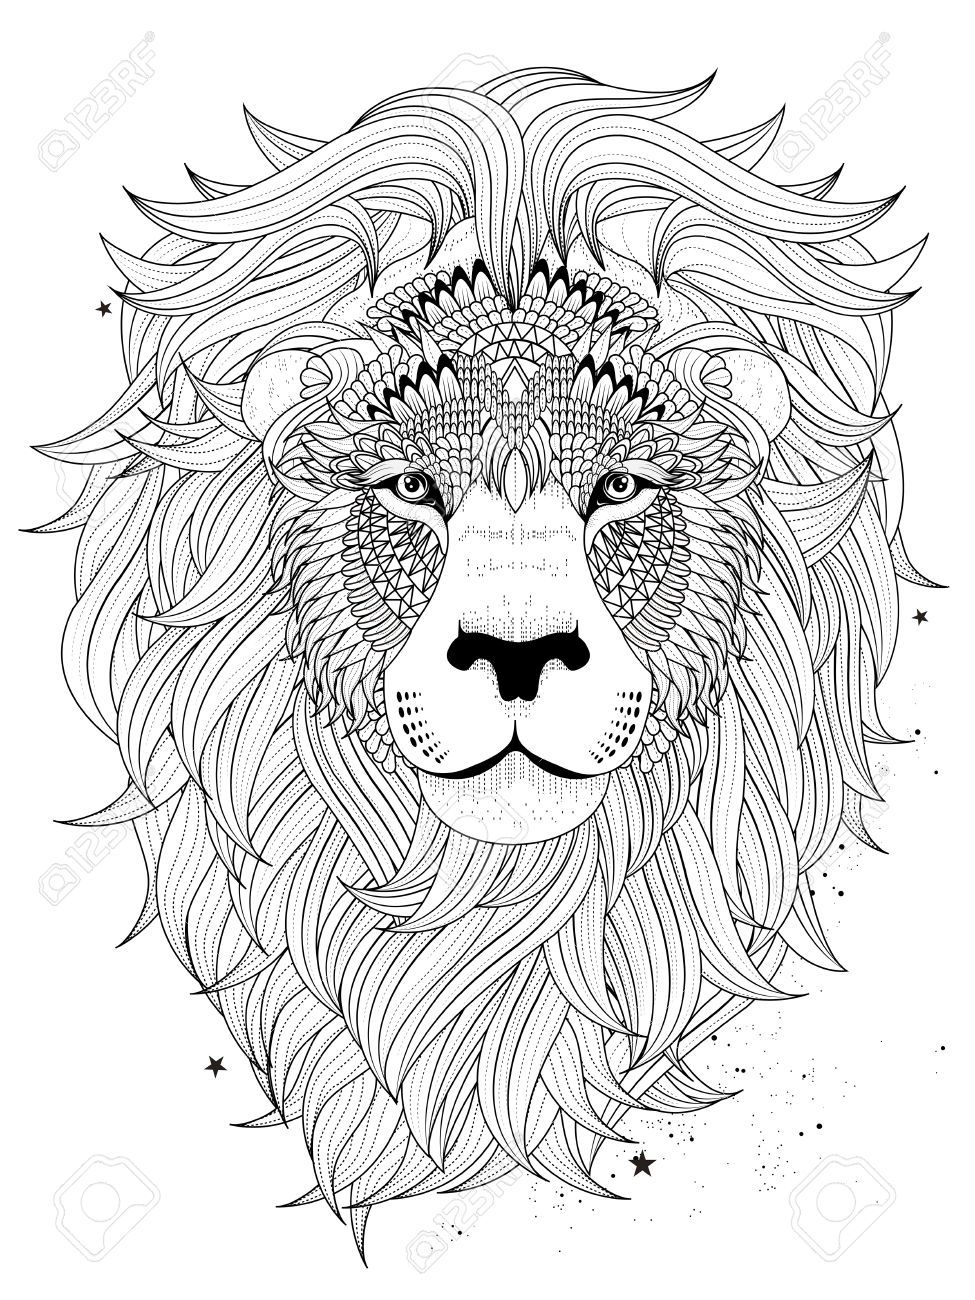 Image Result For Free Lion Adult Coloring Page Lion Coloring